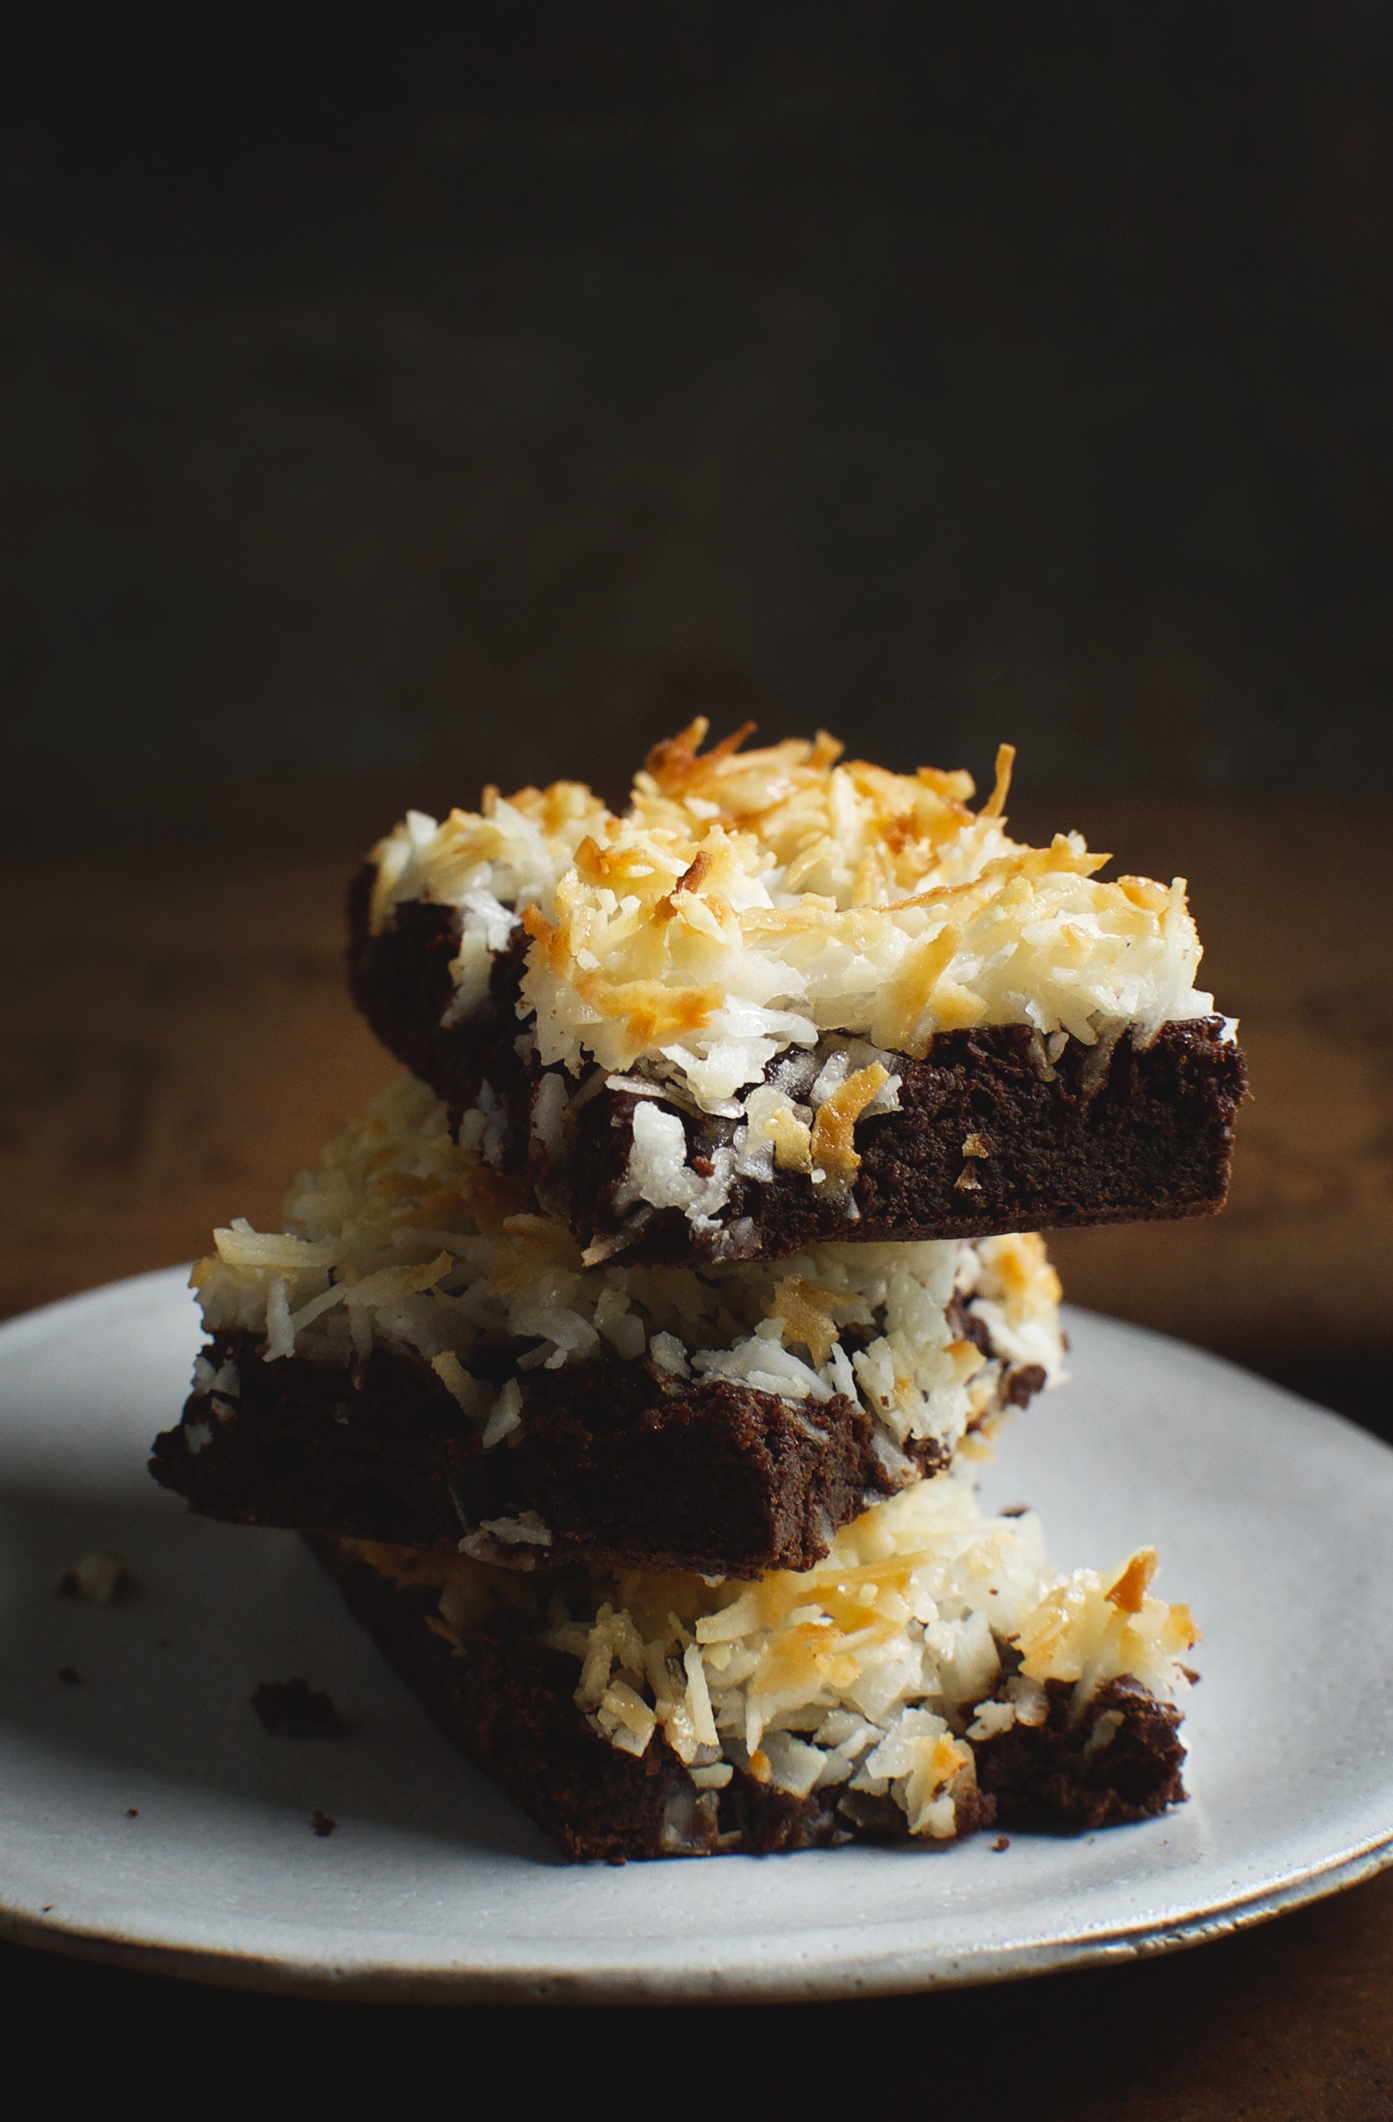 Keto Coconut Crusted Flourless Chocolate Brownies on a plate